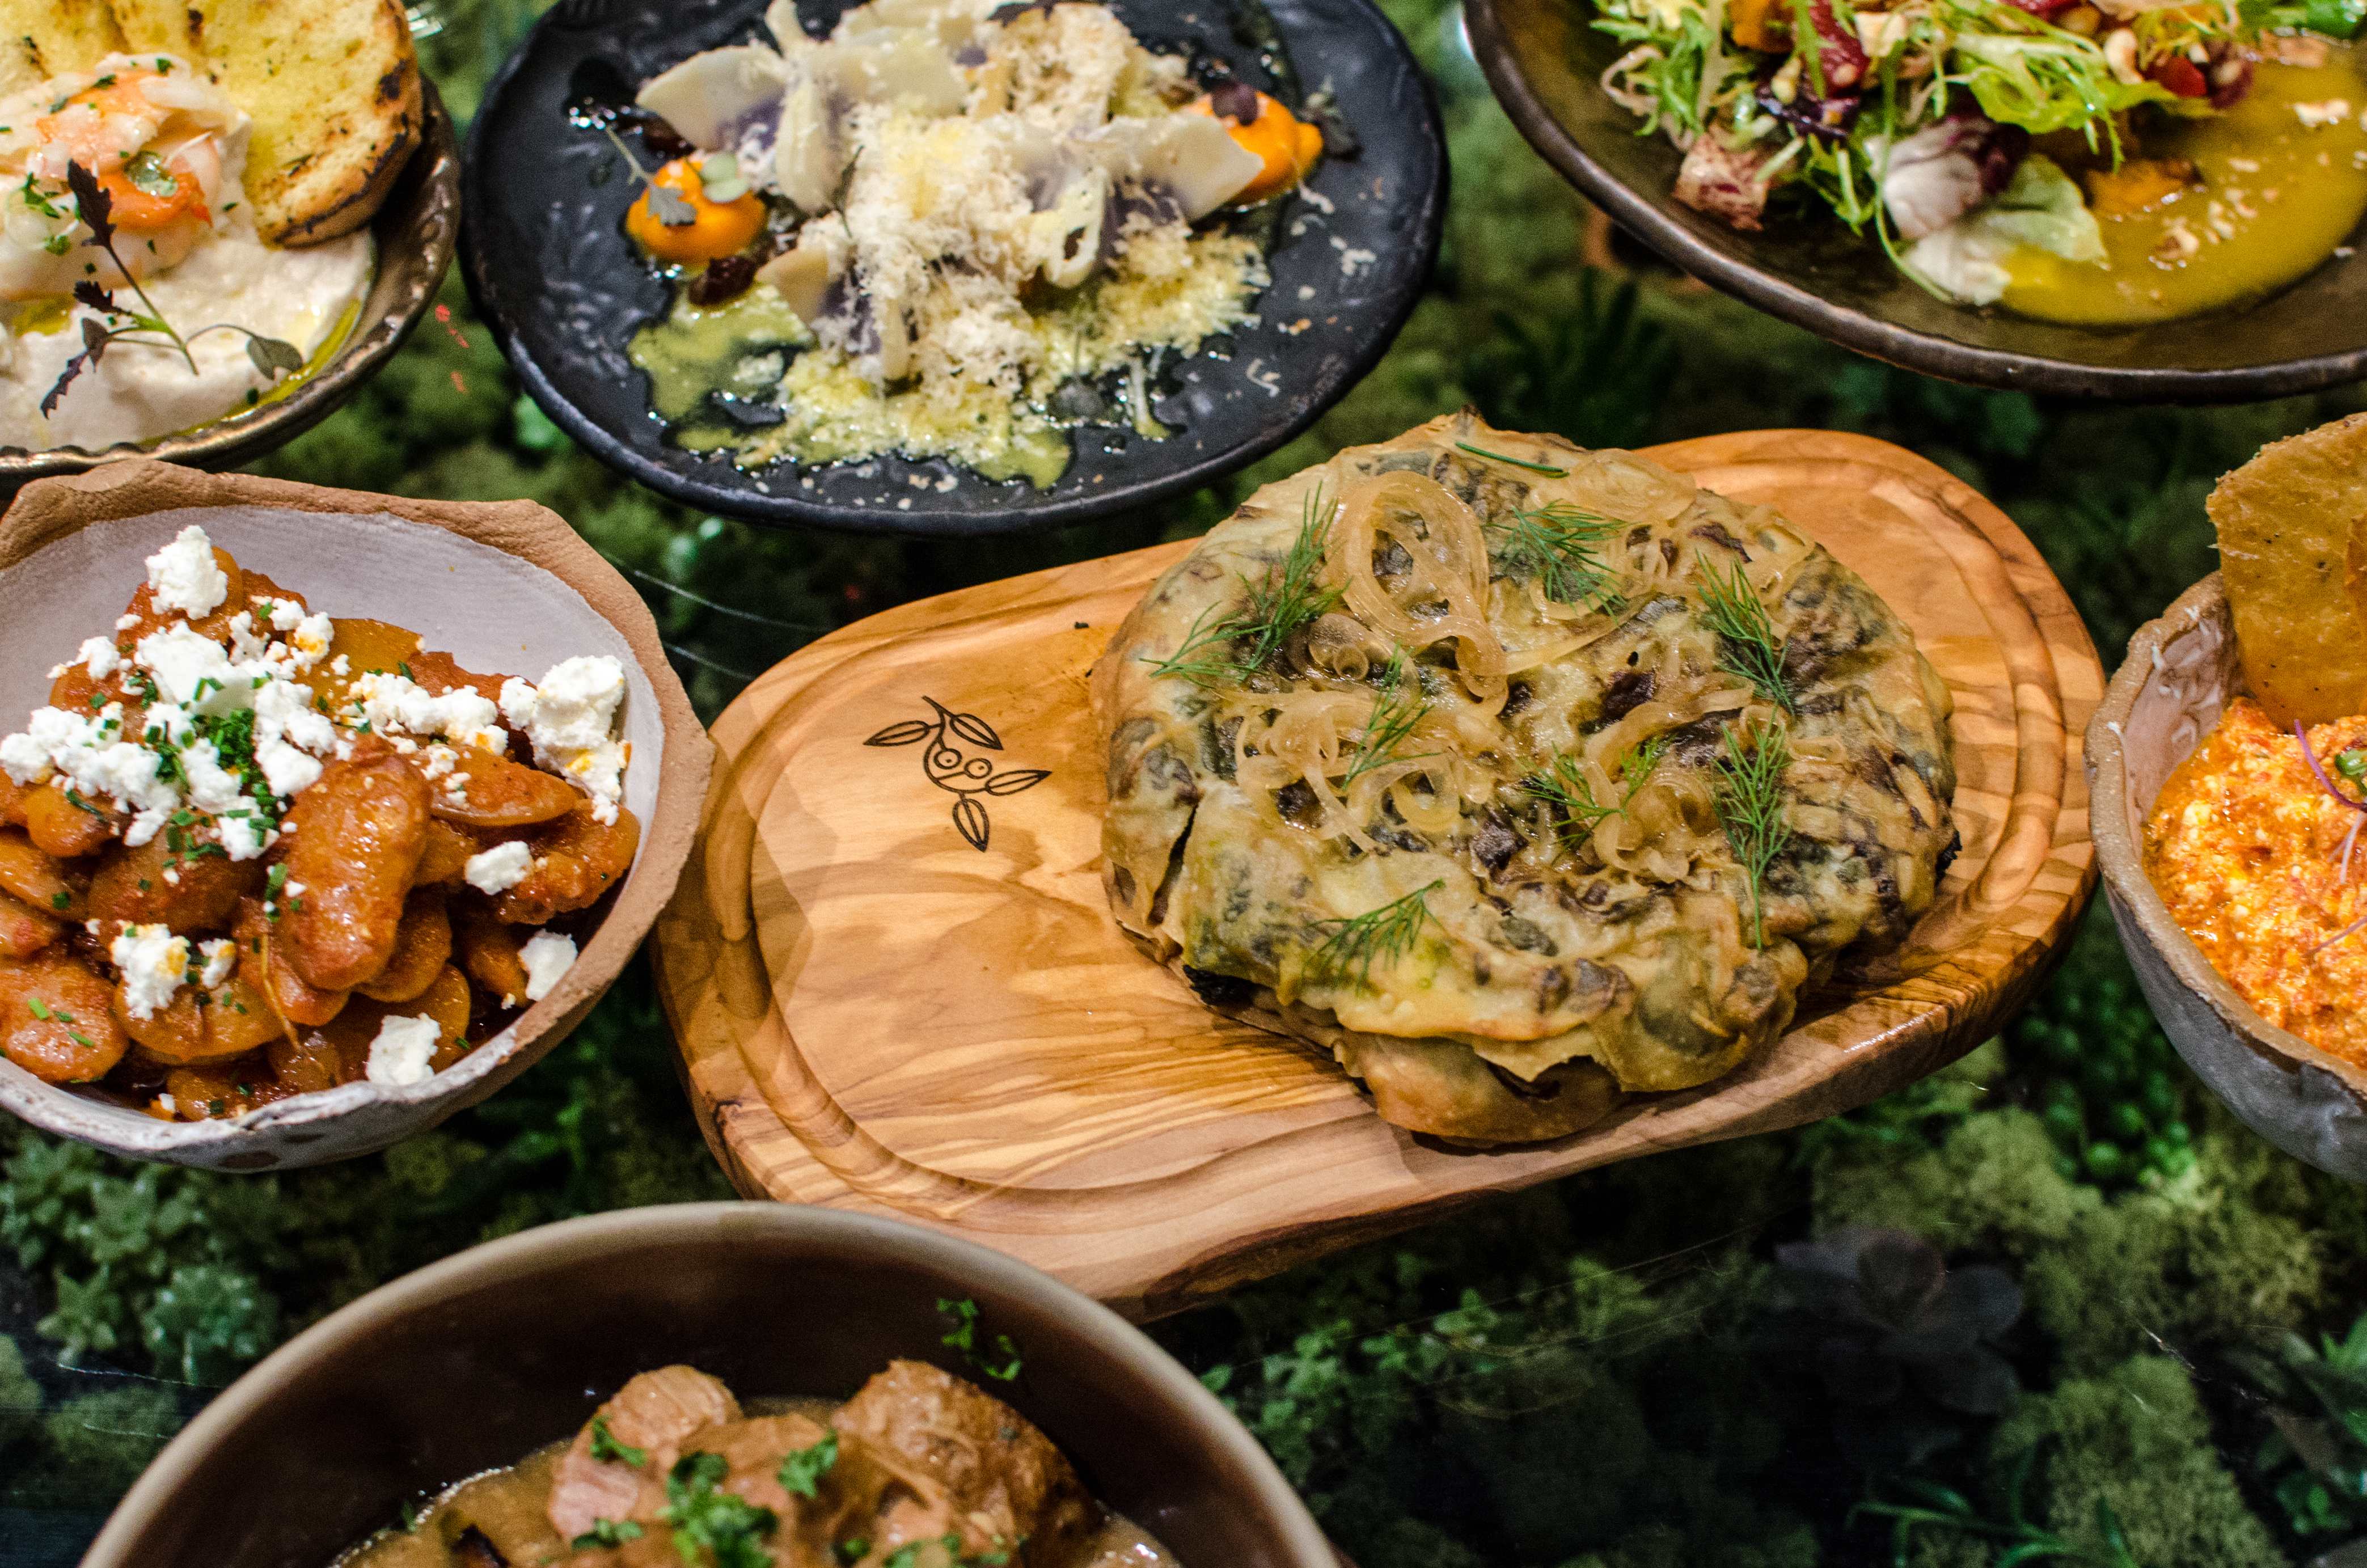 A spread of Greek food on a clear glass table over a platform of greenery. The dishes include a wild greens pie, gigantes, and more.